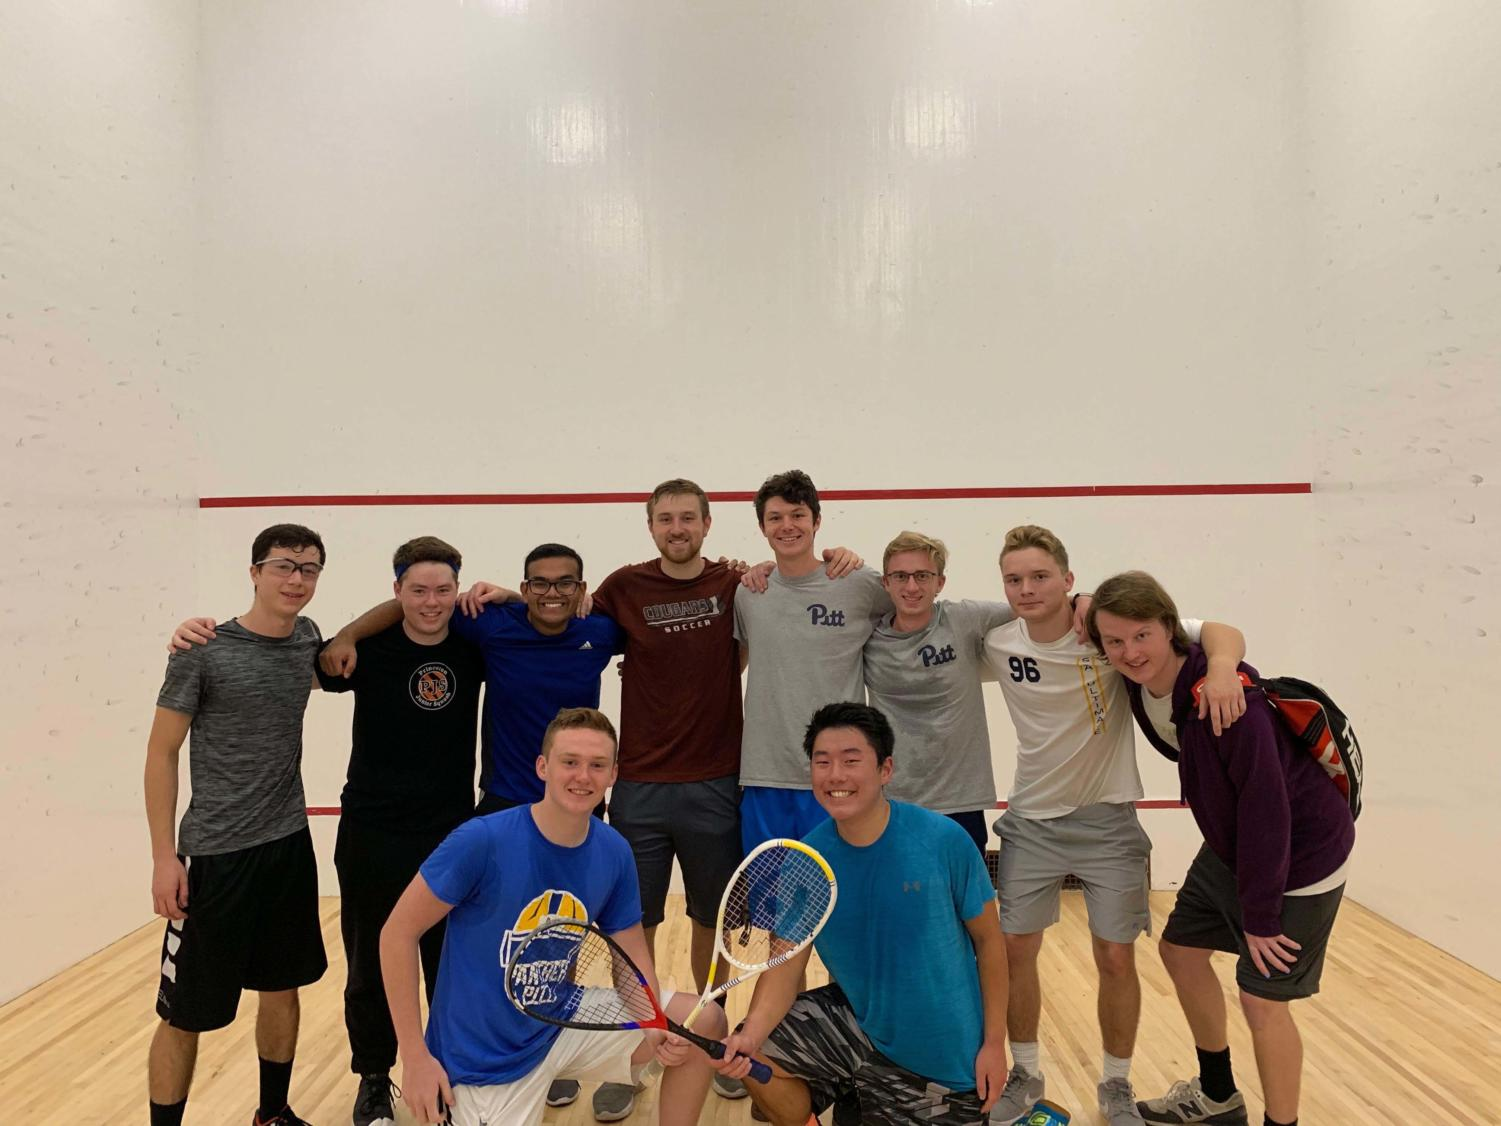 The Pitt club squash team has been around since last year, but just became competitive this season.